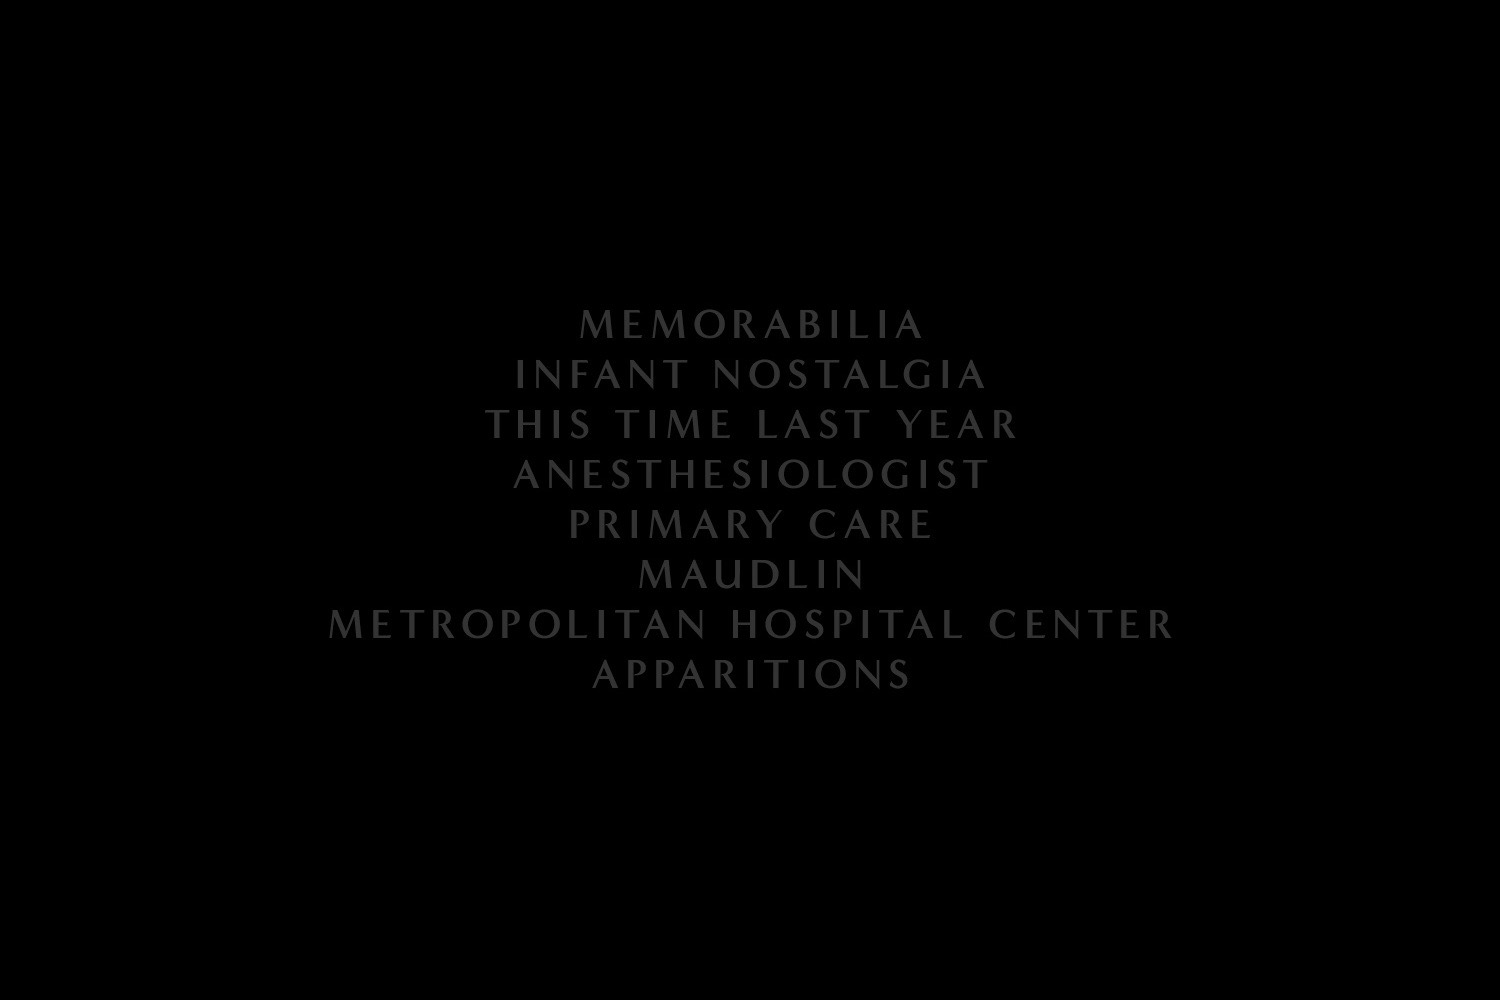 next-friday-metropolitan-hospital-center